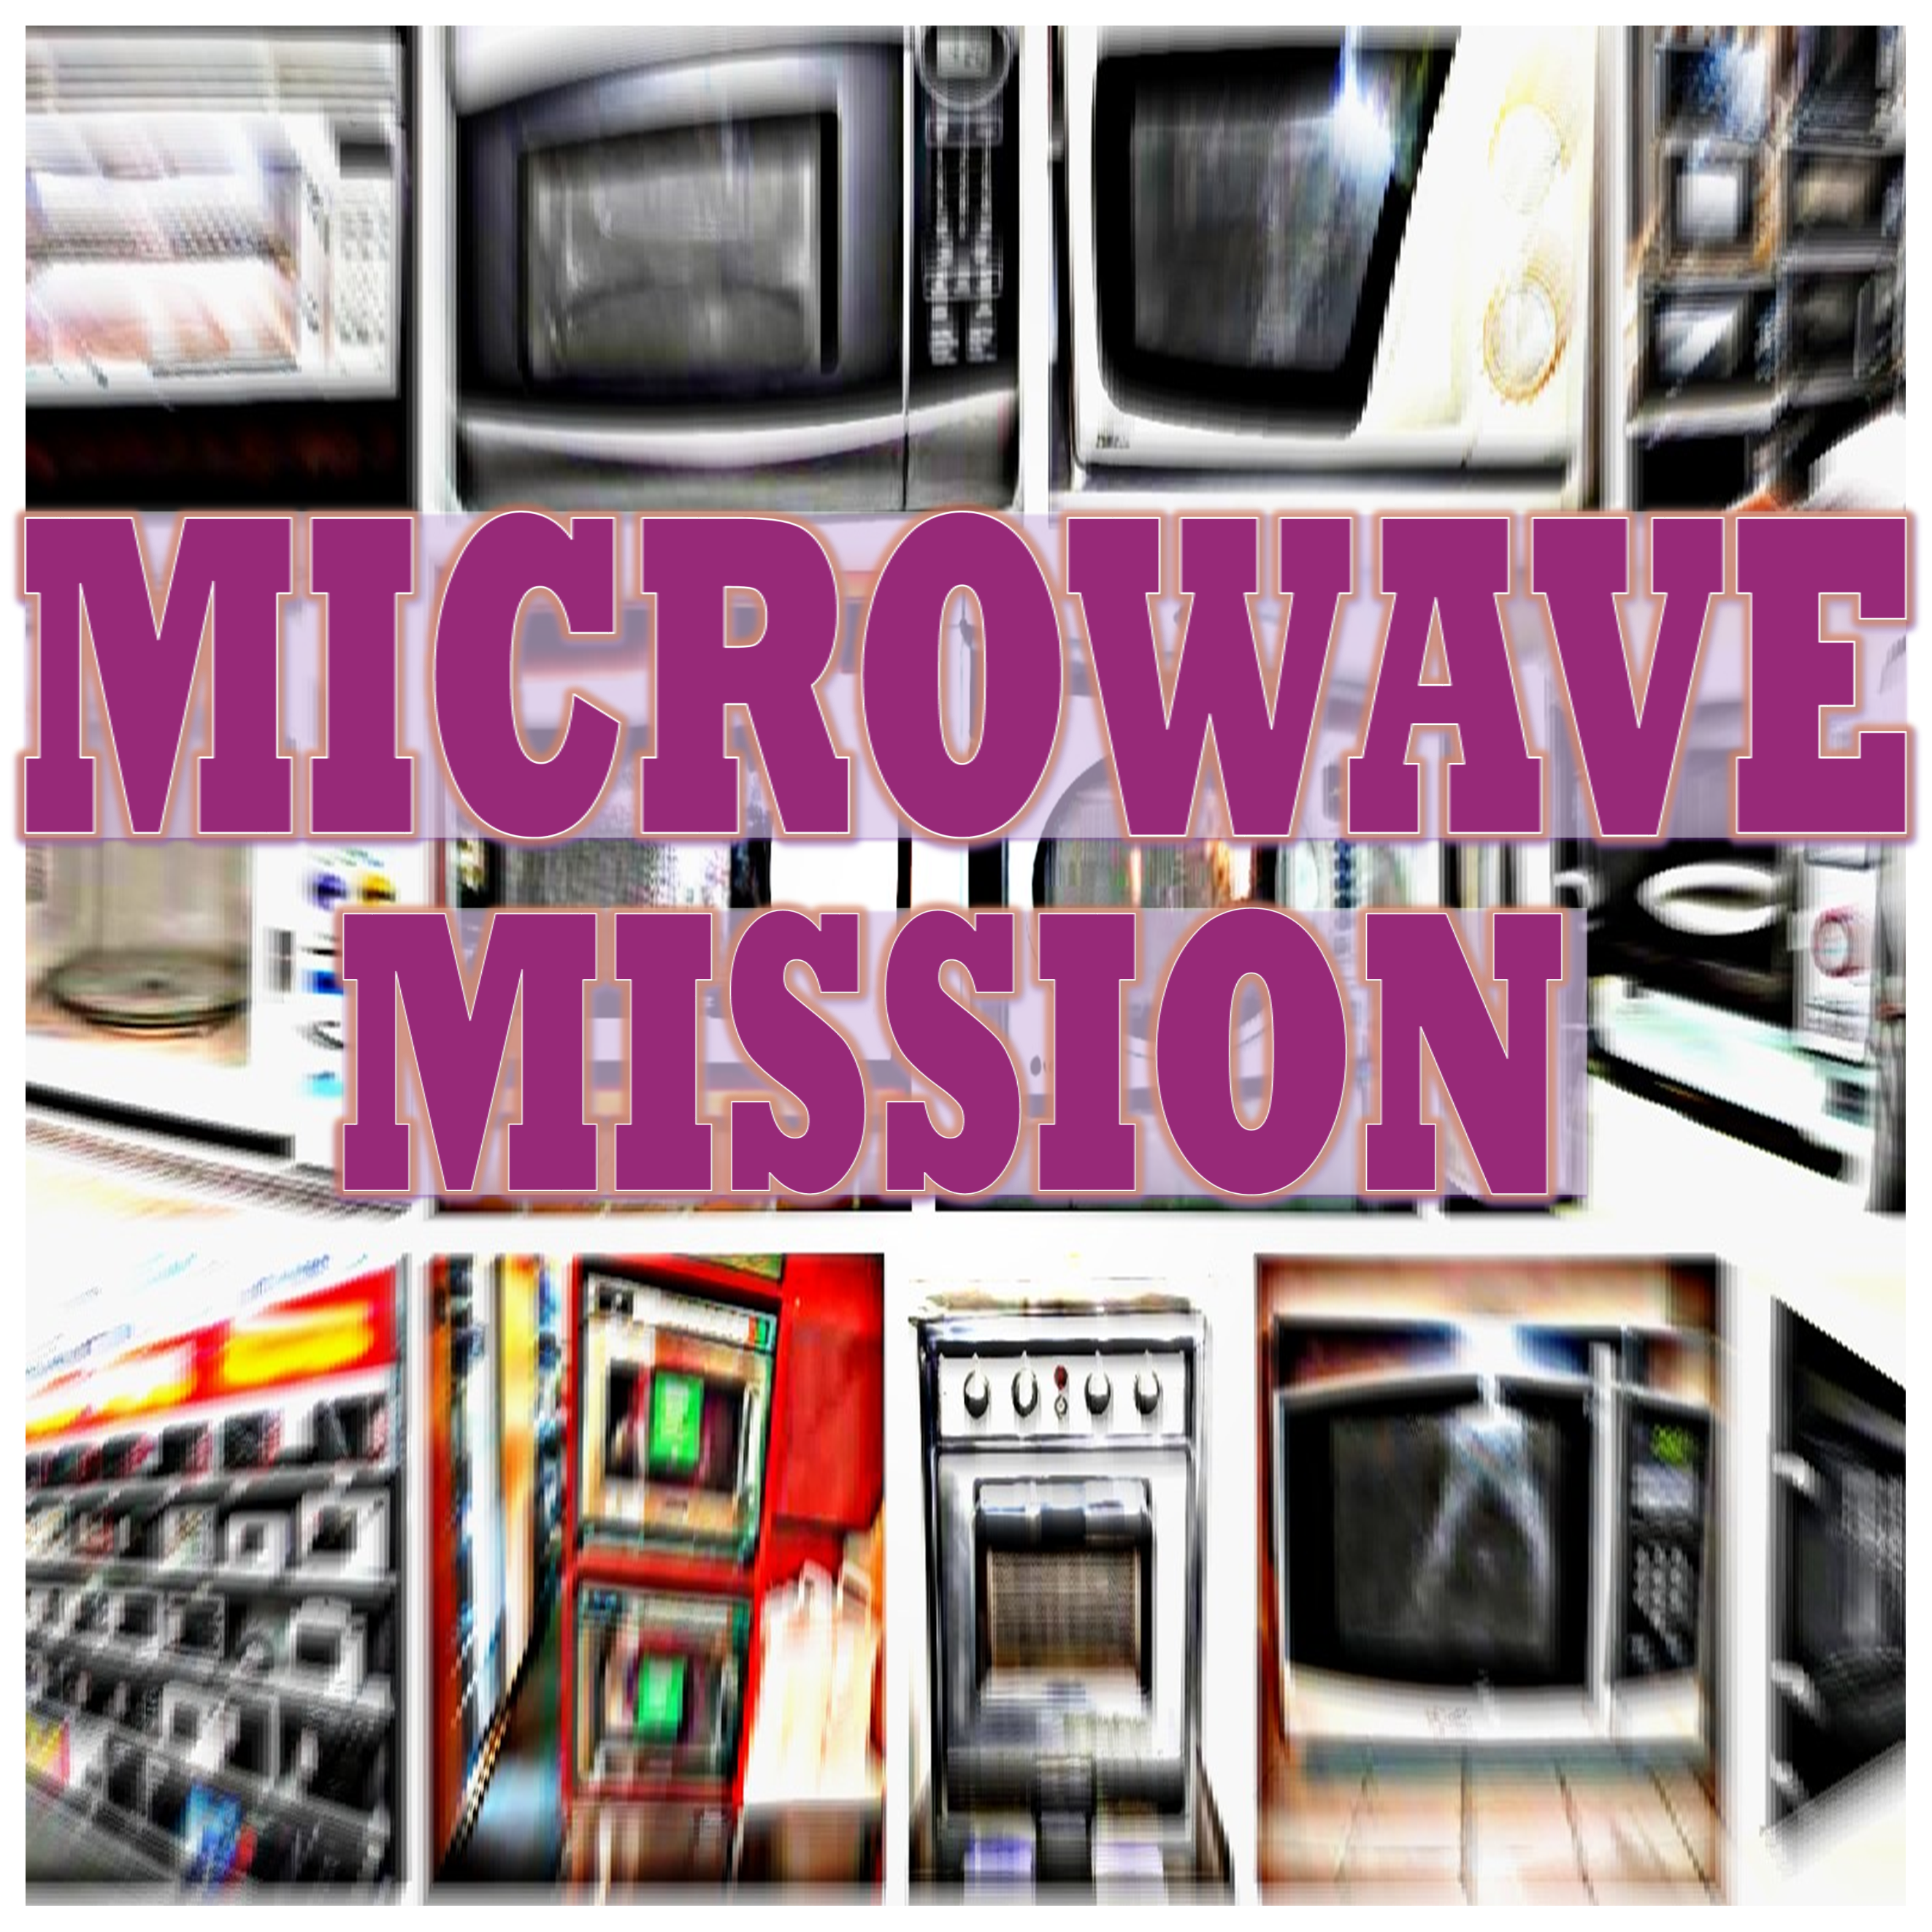 Microwave Mission - square